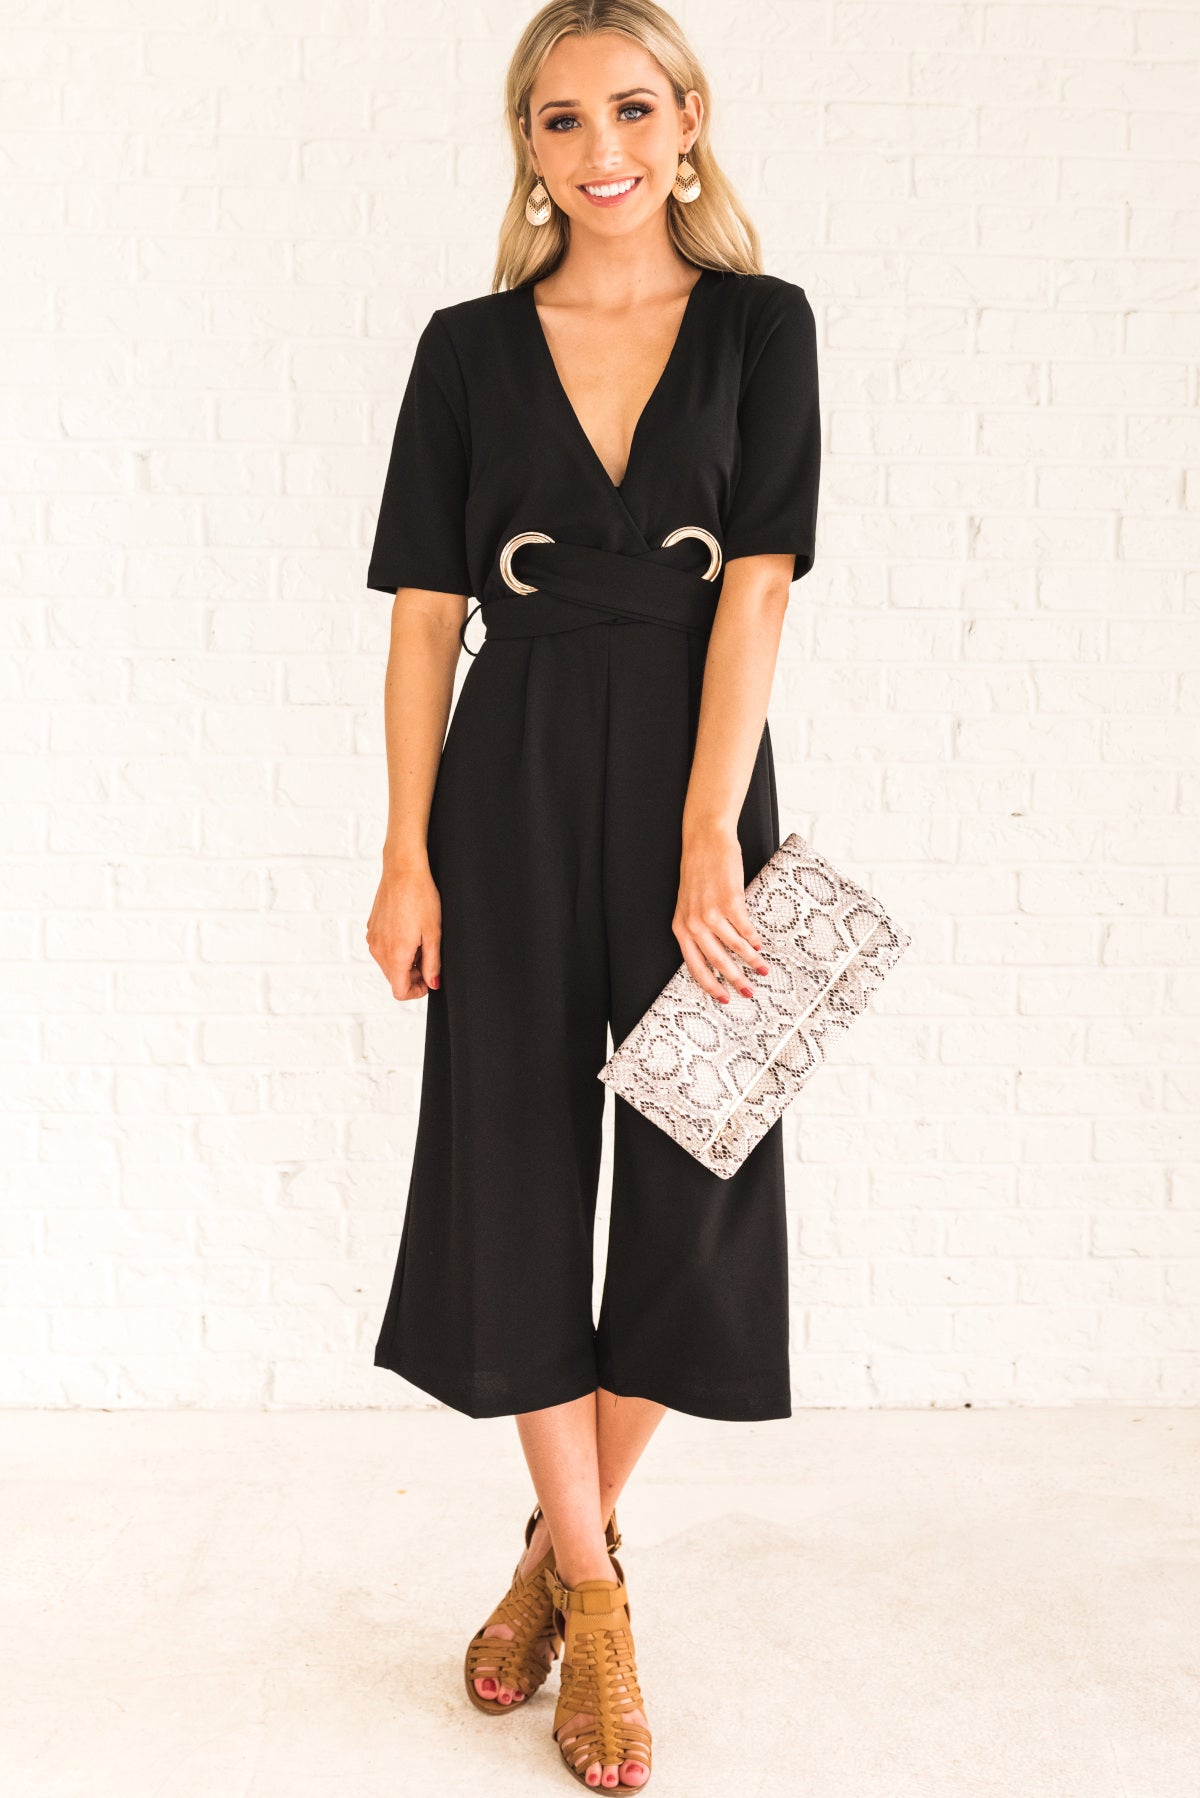 ddaedfdecd9 Black High-Quality Boutique Jumpsuits for Women